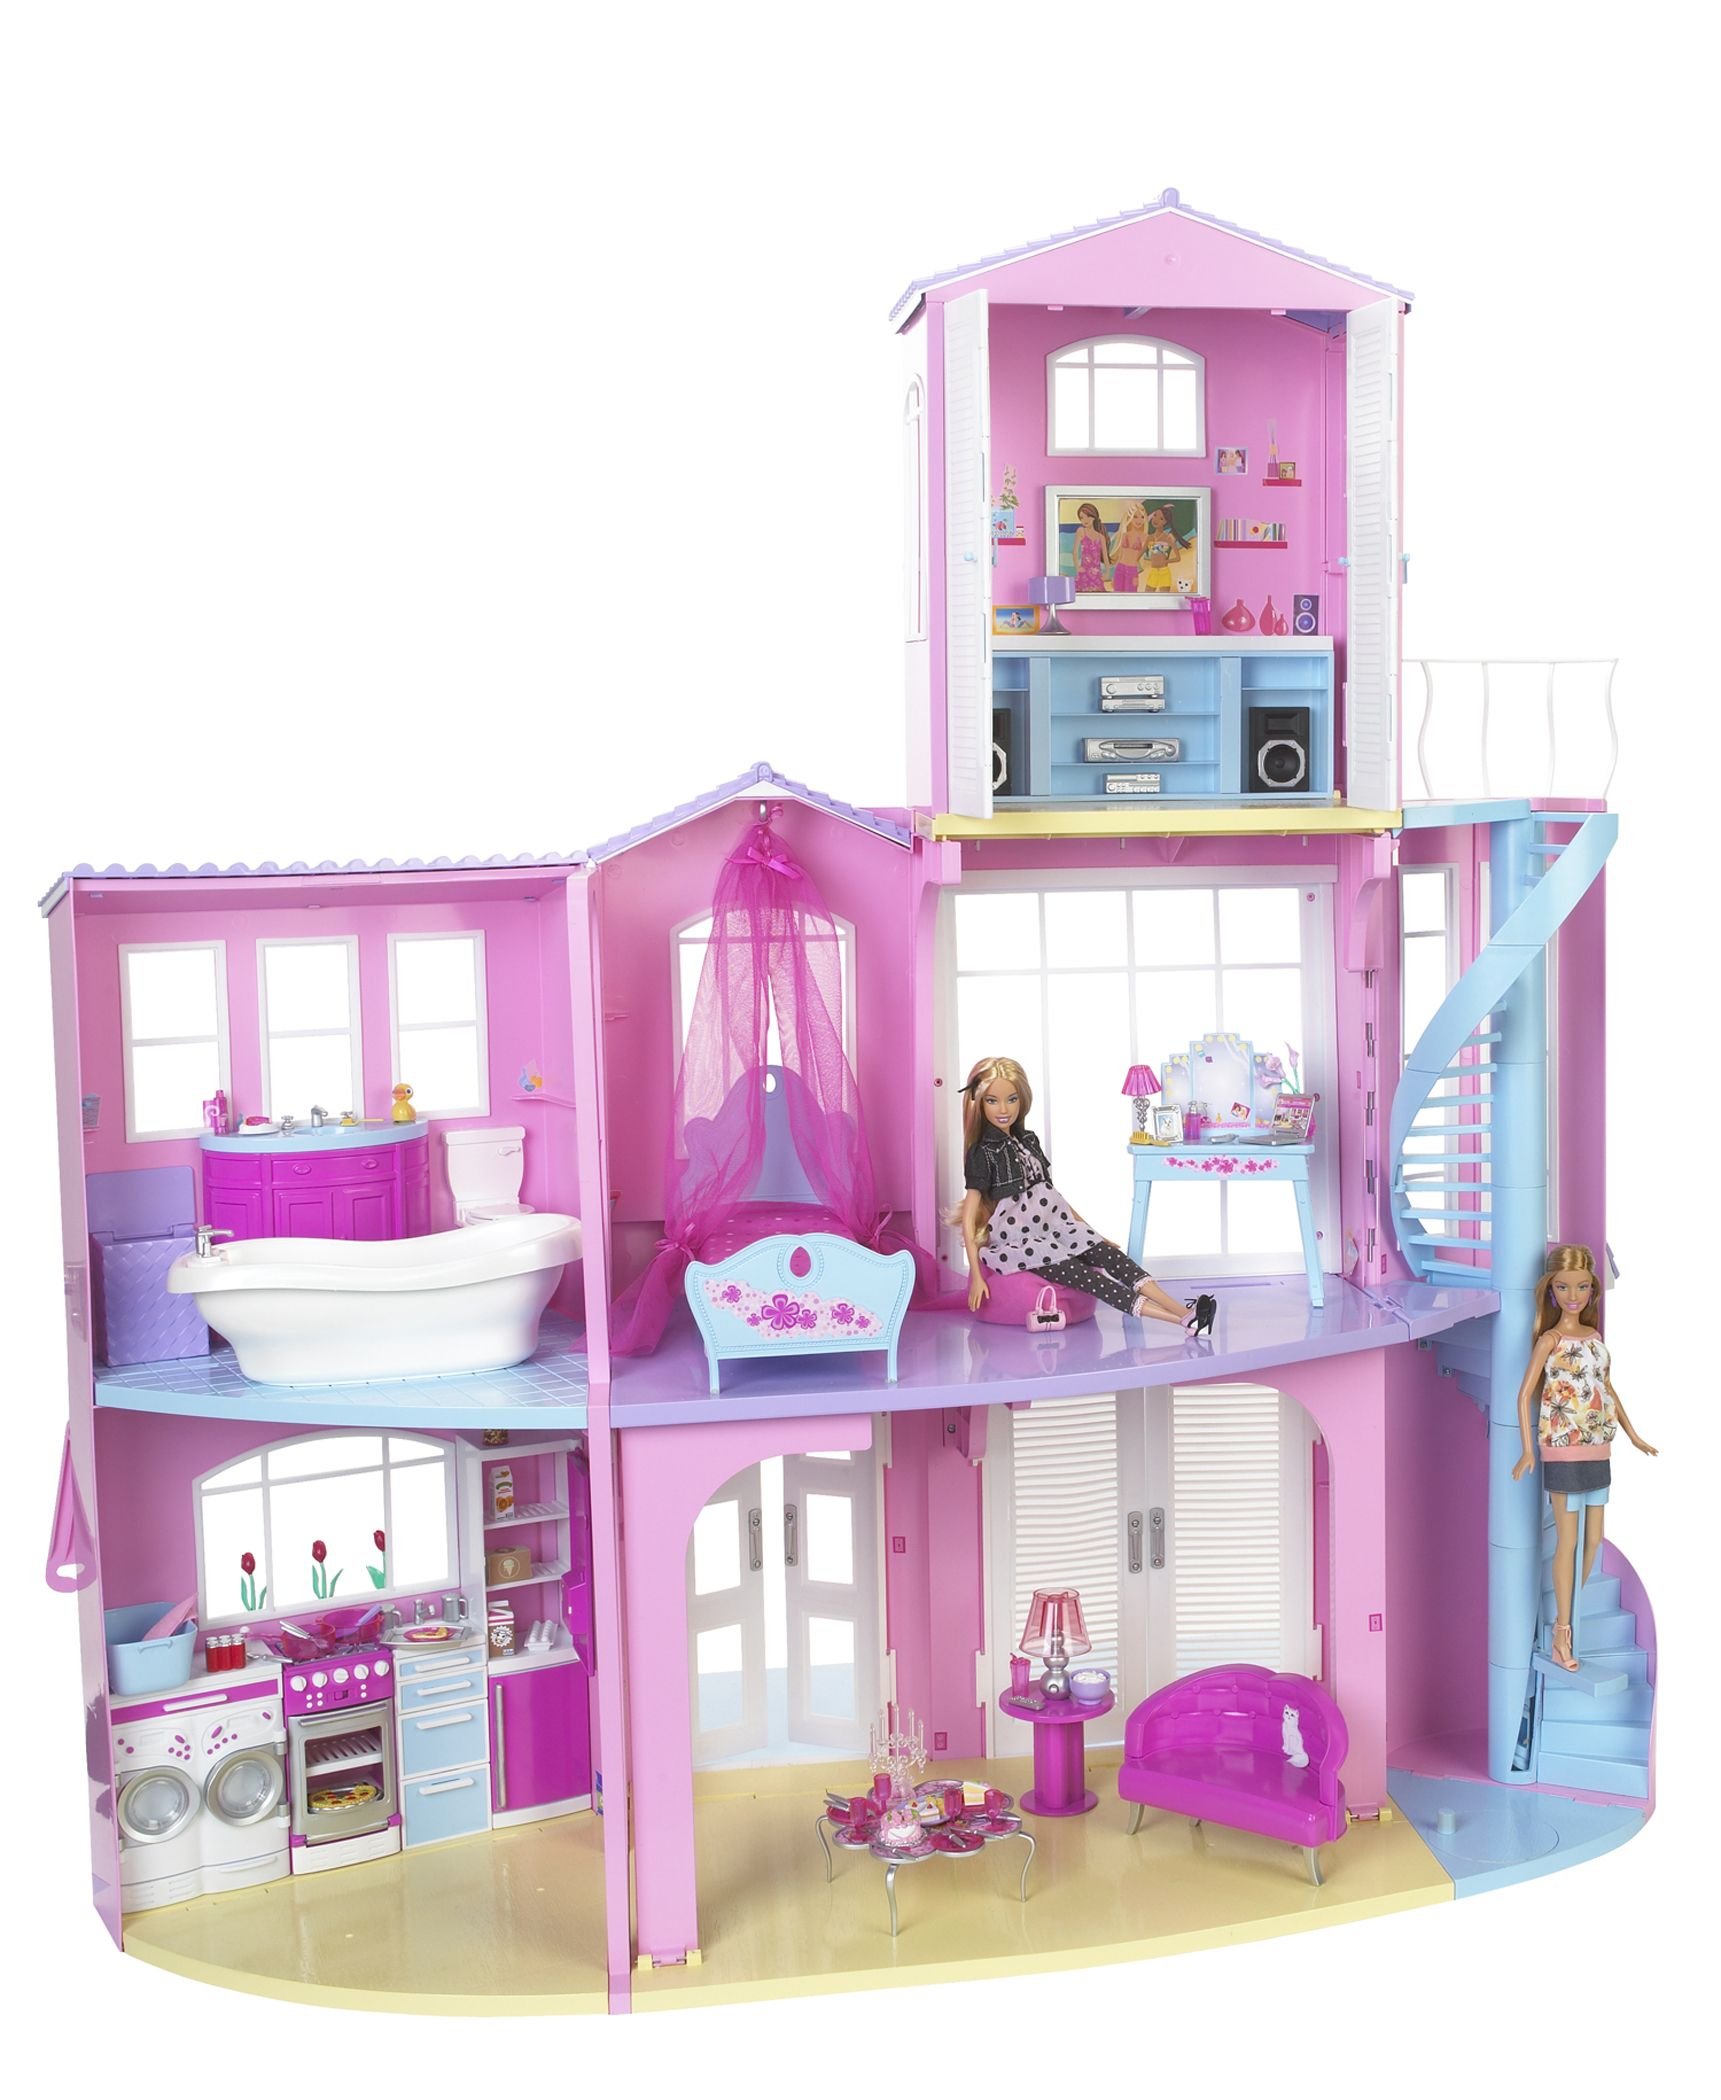 History Of Barbie Dream House Evolution Of Barbie Dream House